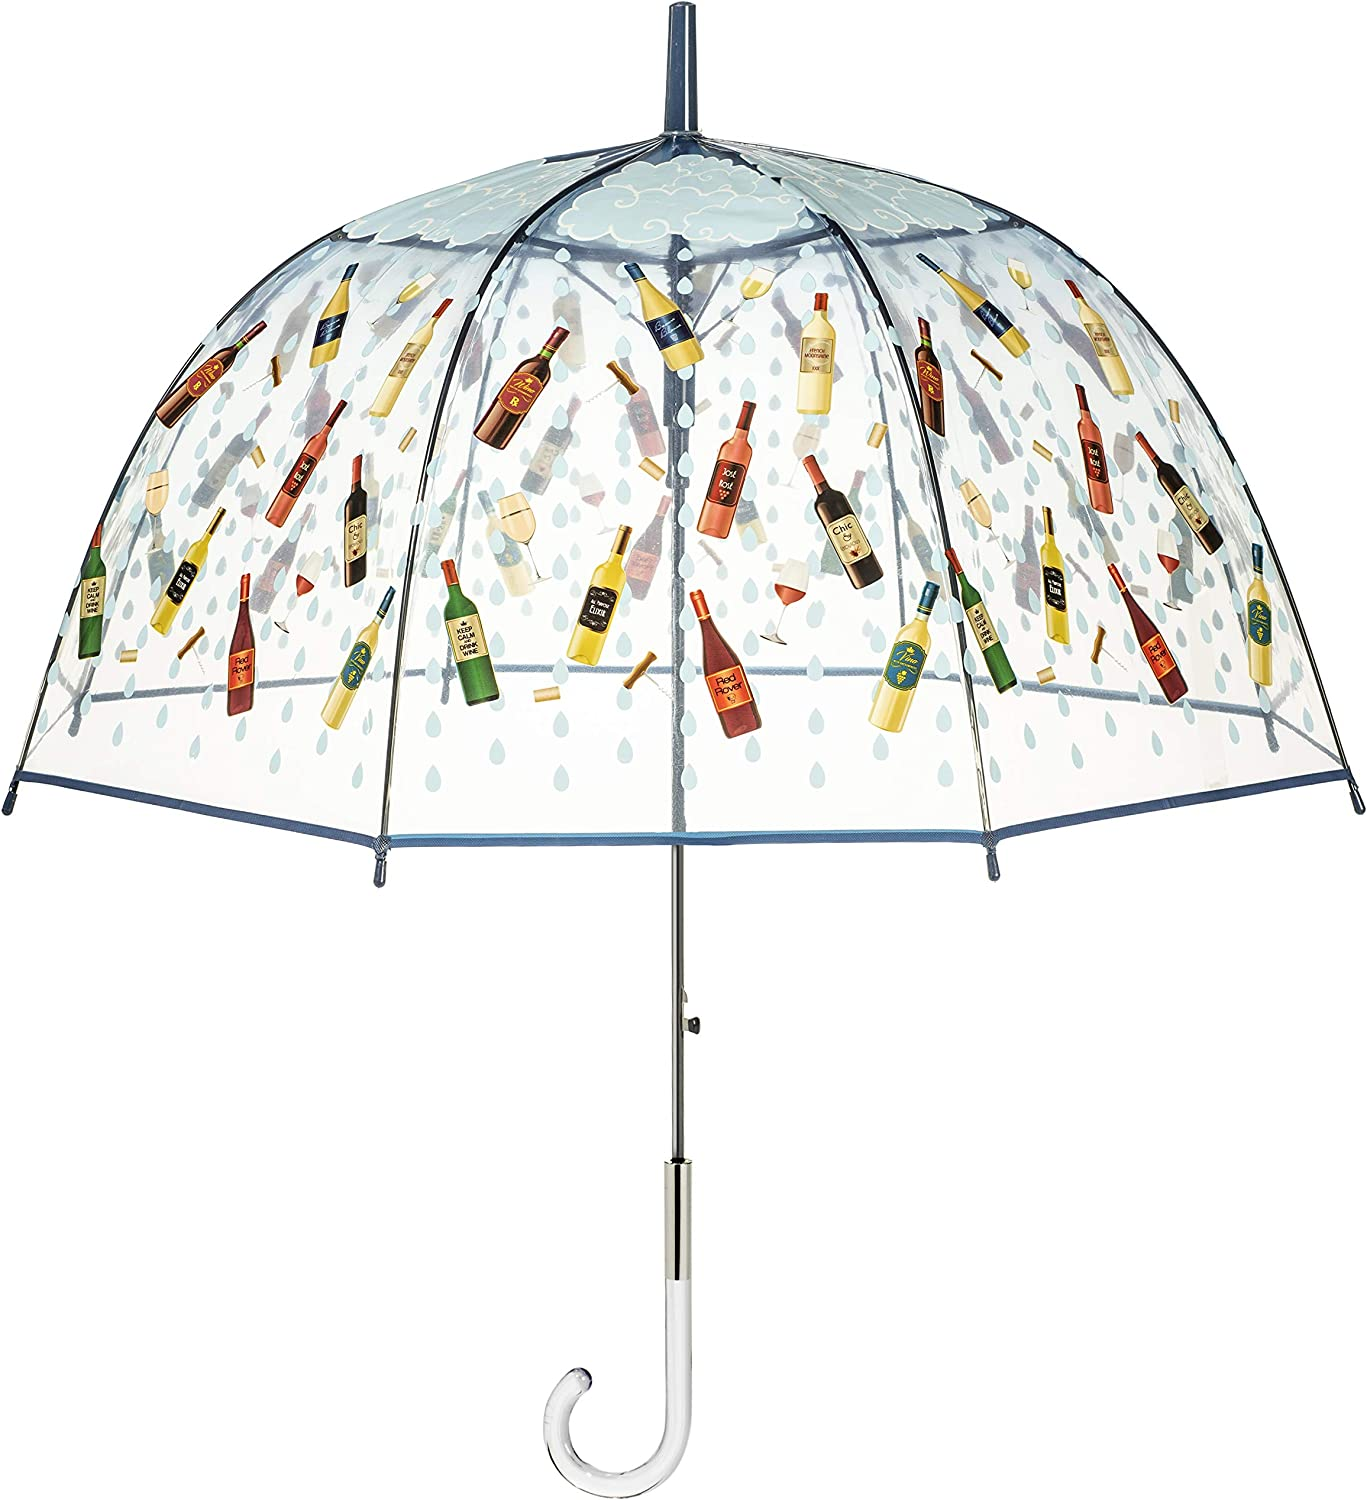 Maad Brands Outlet ☆ Free Shipping Wine Many popular brands Lovers Bubble Fr Girlfriends Dome Umbrella for